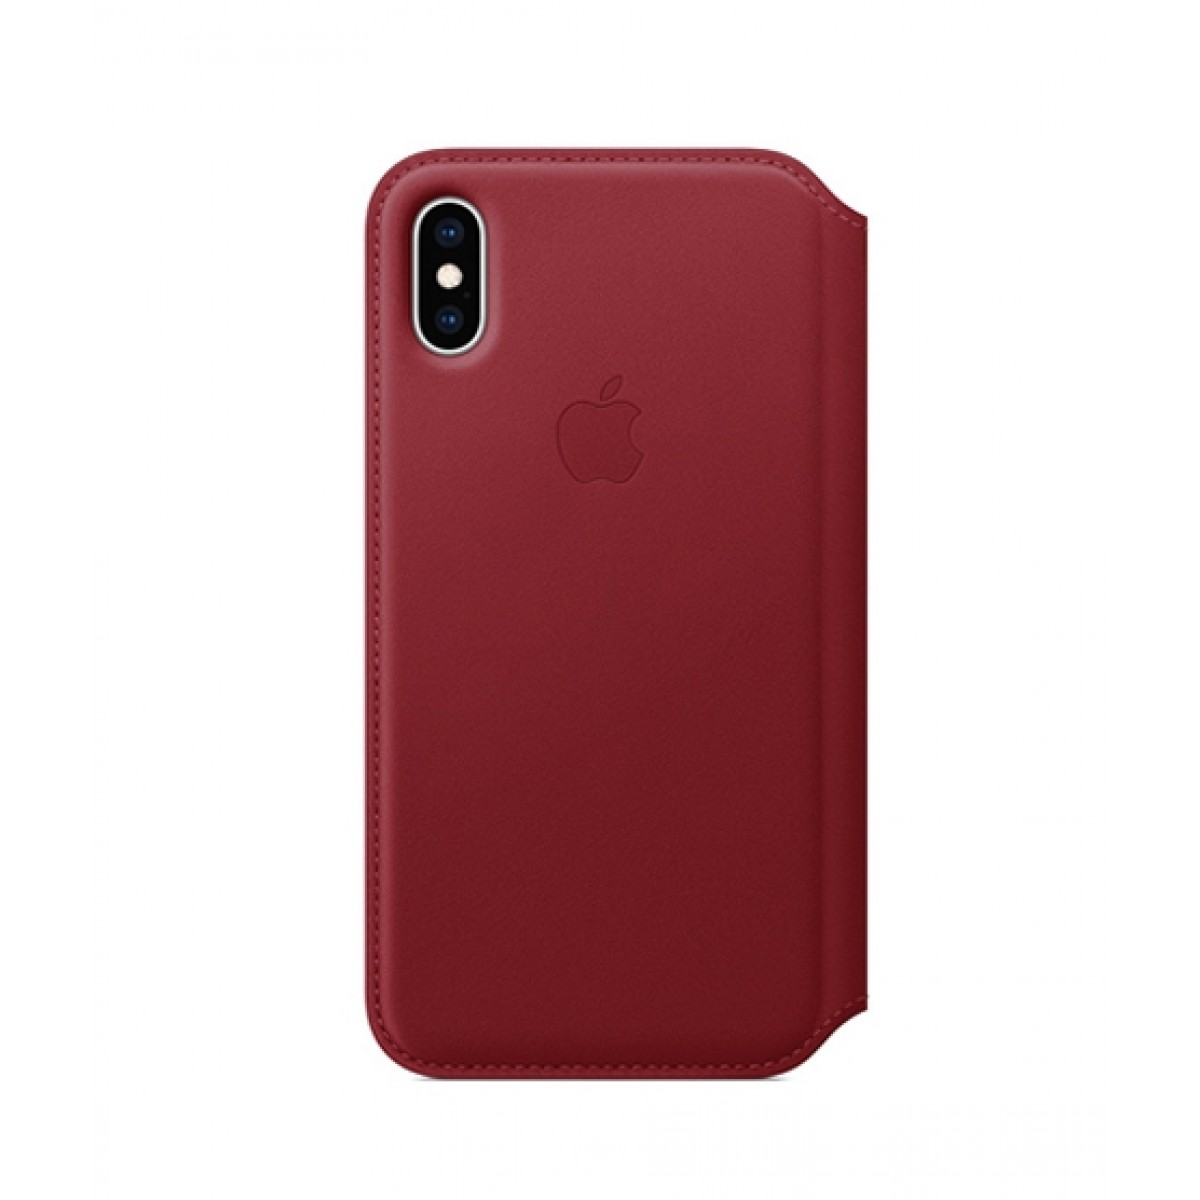 promo code 64ab5 a5eaf Apple Leather Folio Red Case For iPhone XS